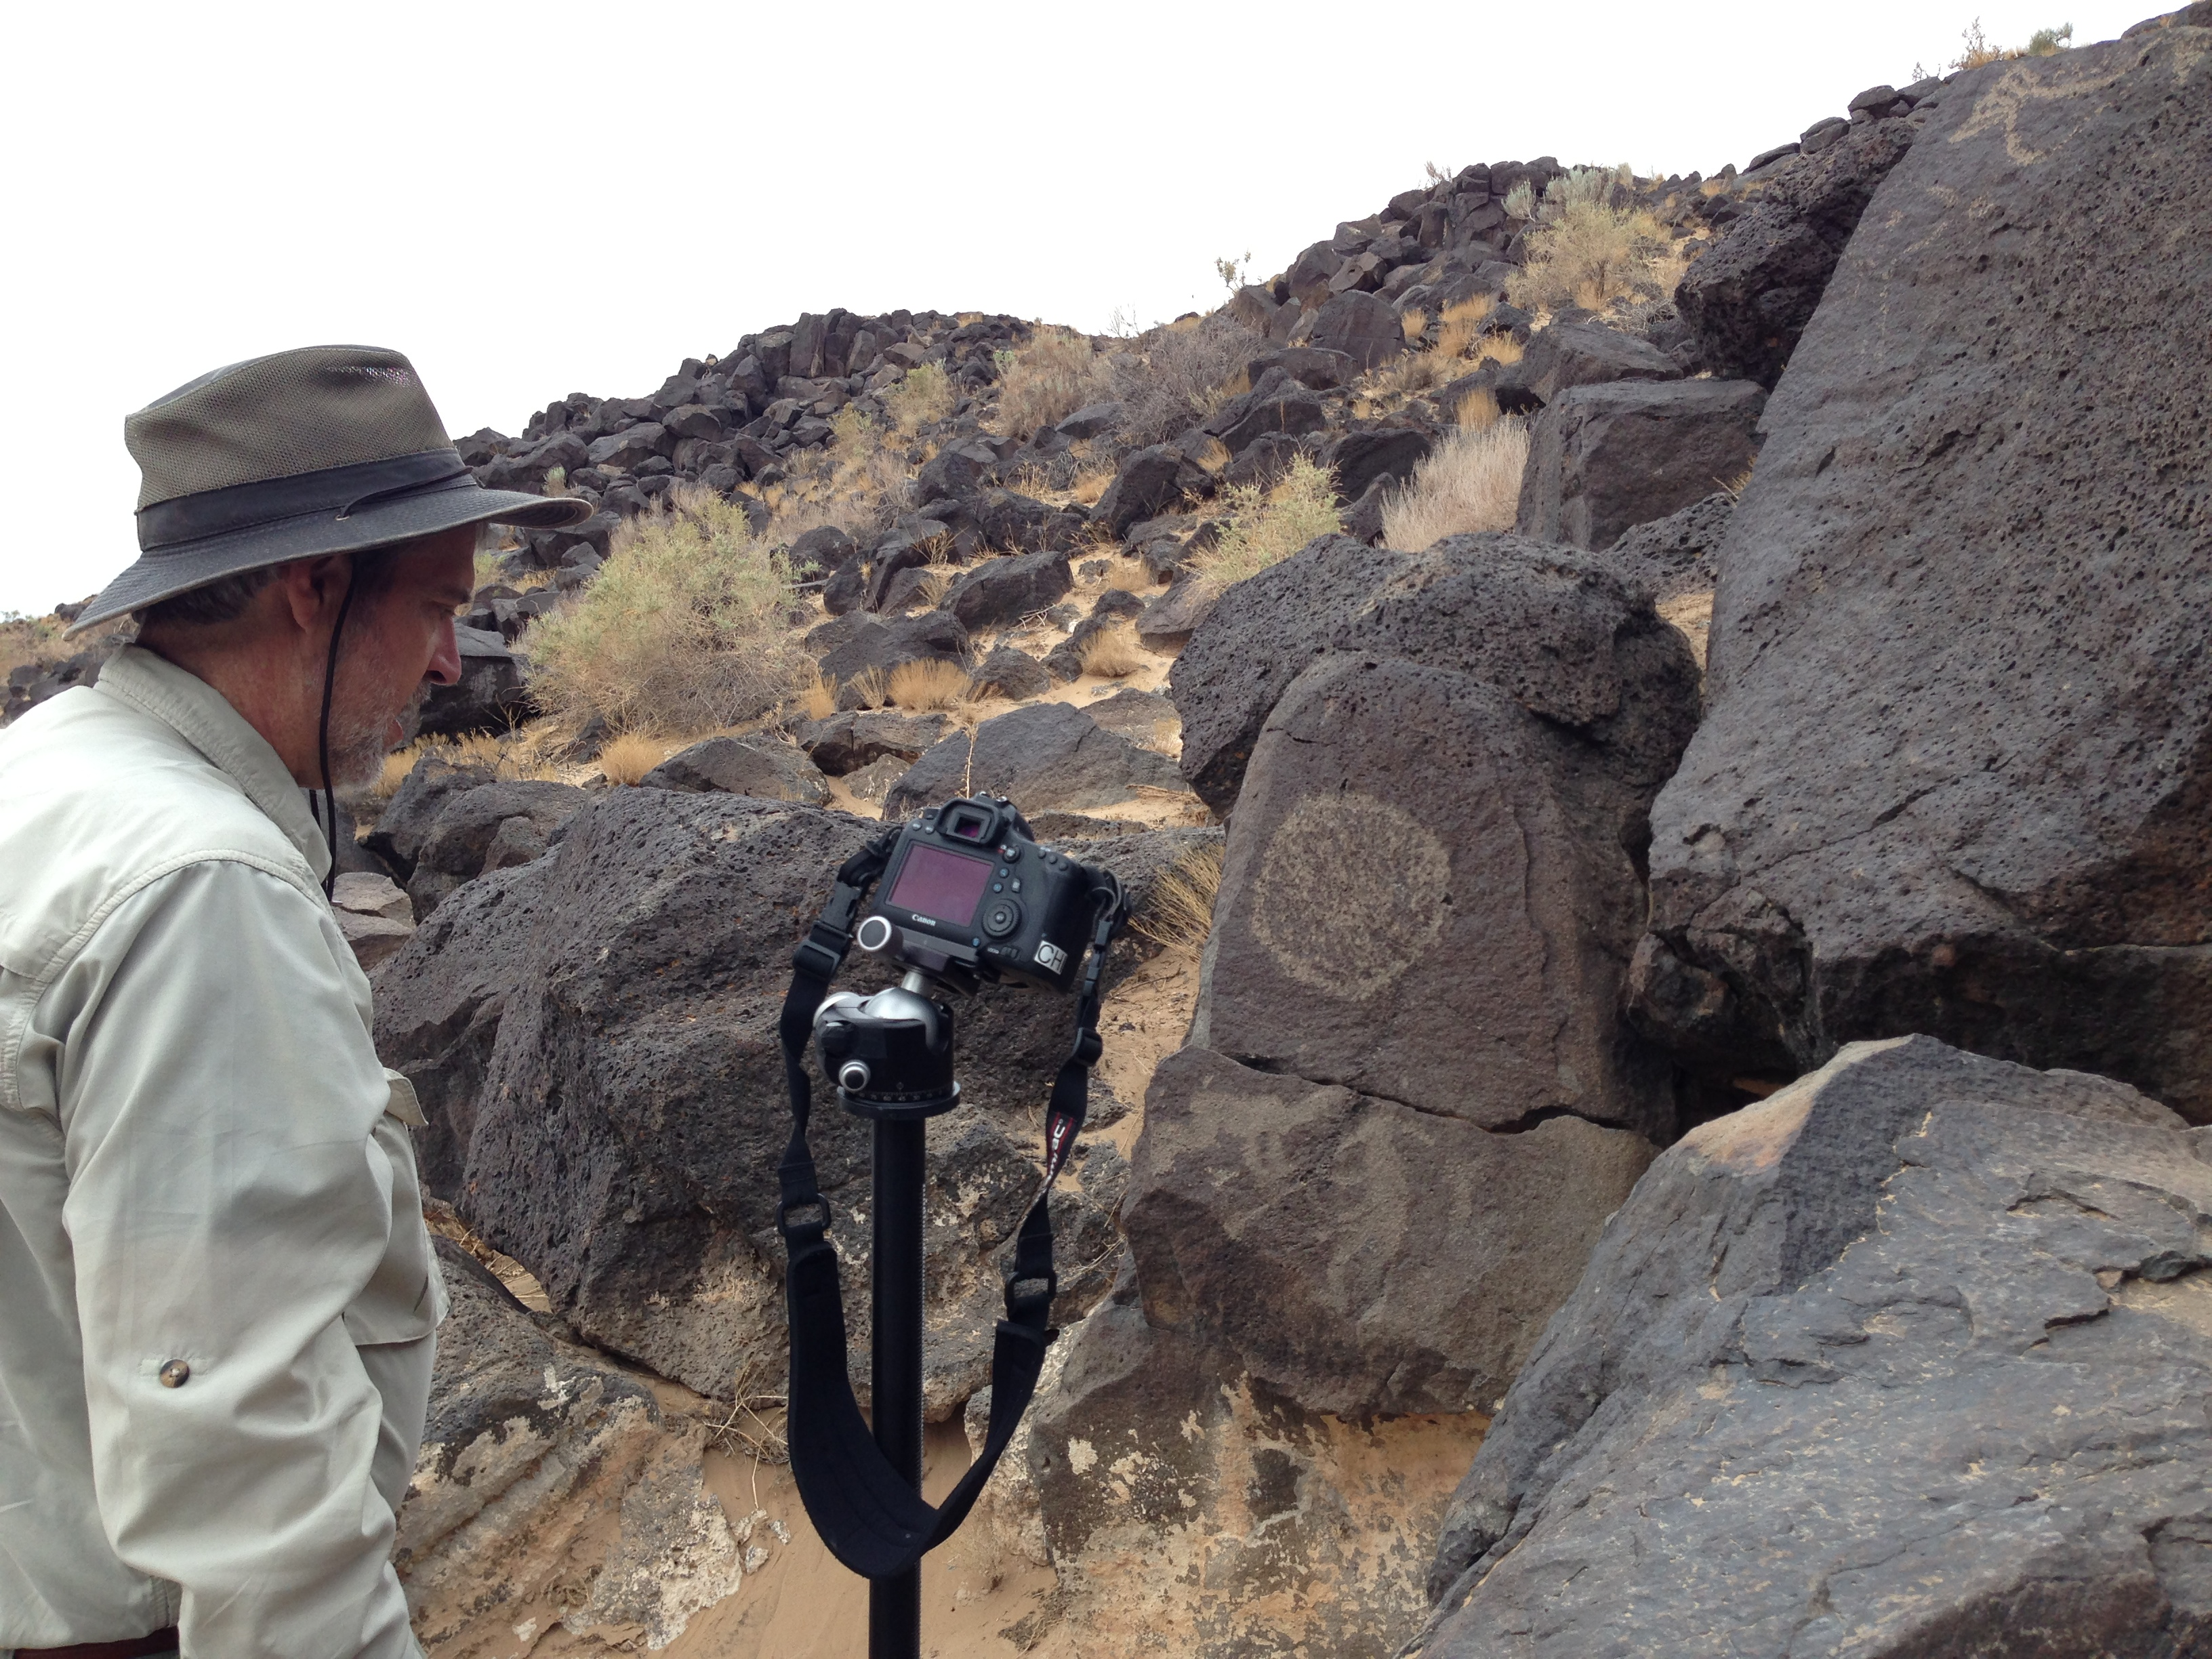 Setting up to shoot RTI of the 2 flute players panel at the Petroglyph National Monument, in Albuquerque, New Mexico.